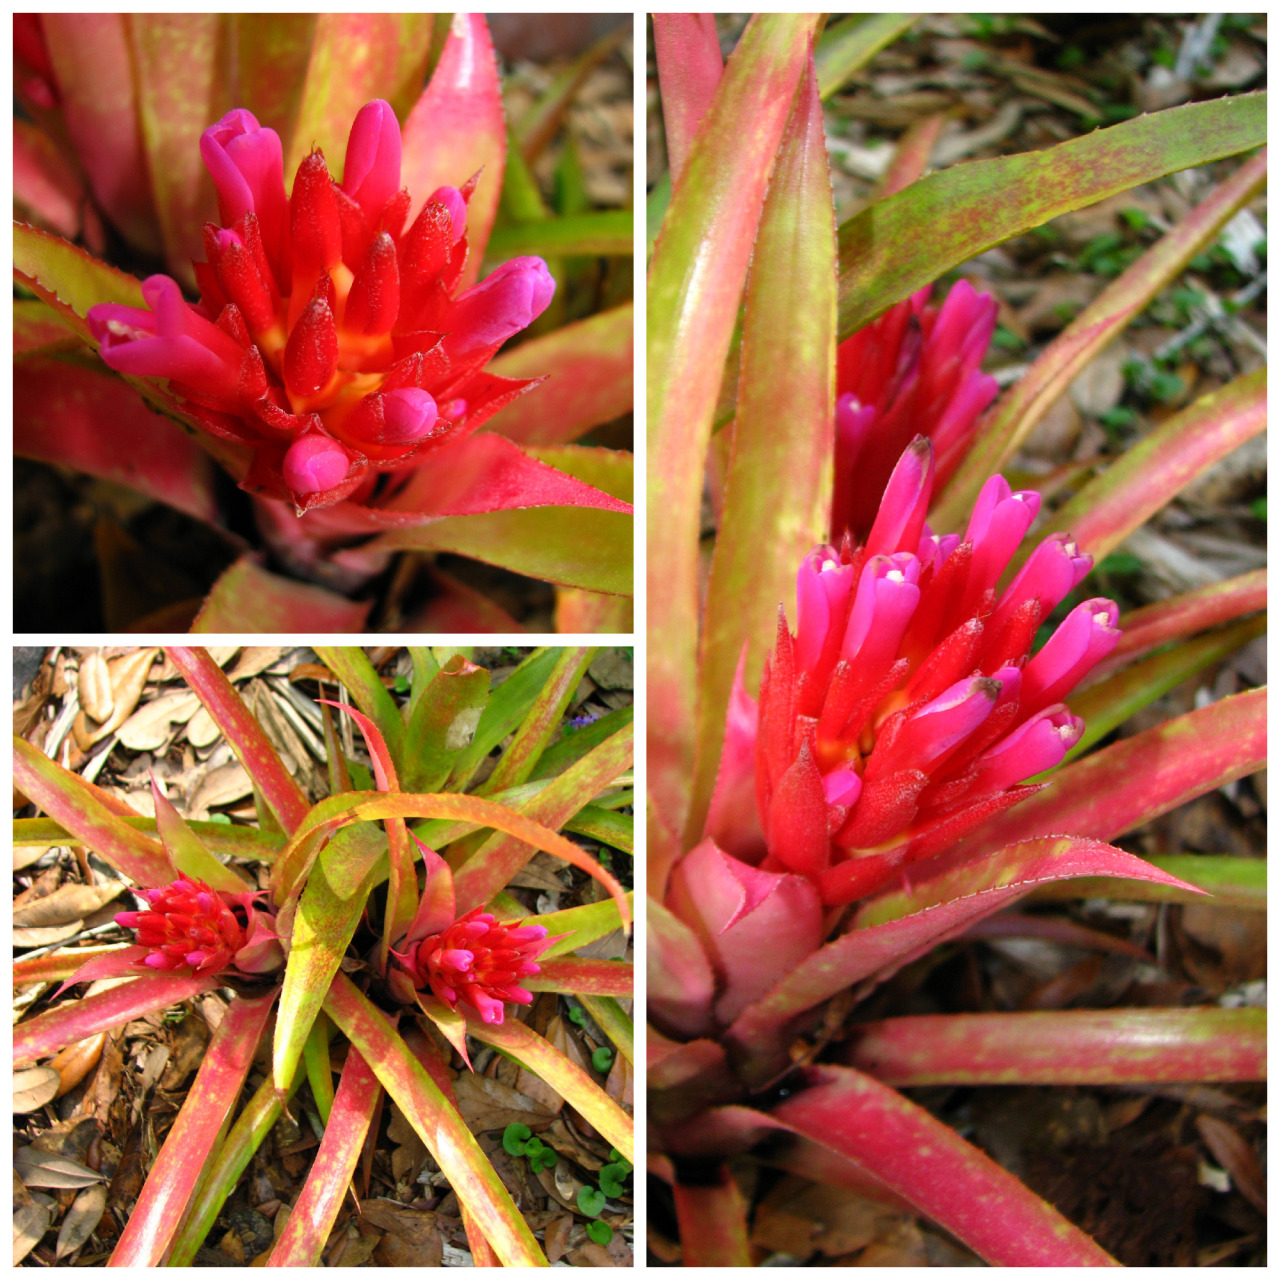 Scientific Name - Aechmea 'Red Dragon' Common Name - NonePlace of Origin - Unknown Status - Not threatened  This is one of my favorite plants, and I think the pictures speak for themselves! However, I'm still going to talk a little bit about this plant.  I couldn't find much info on this plant, but it definitely has Aechmea recurvata in its blood, and is possibly a cultivar of A. recurvata or a hybrid. It has the typical recurvata shape, inflorescence, and blushing characteristic that many of them do.  Very easy to care for, they take full to part sun, tolerate my cold weather with ease. They flower in early spring and stand out in the garden, despite their small size. An individual plant is around 6 to 8 inches tall, and maybe 4 to 6 inches wide when grown hard.